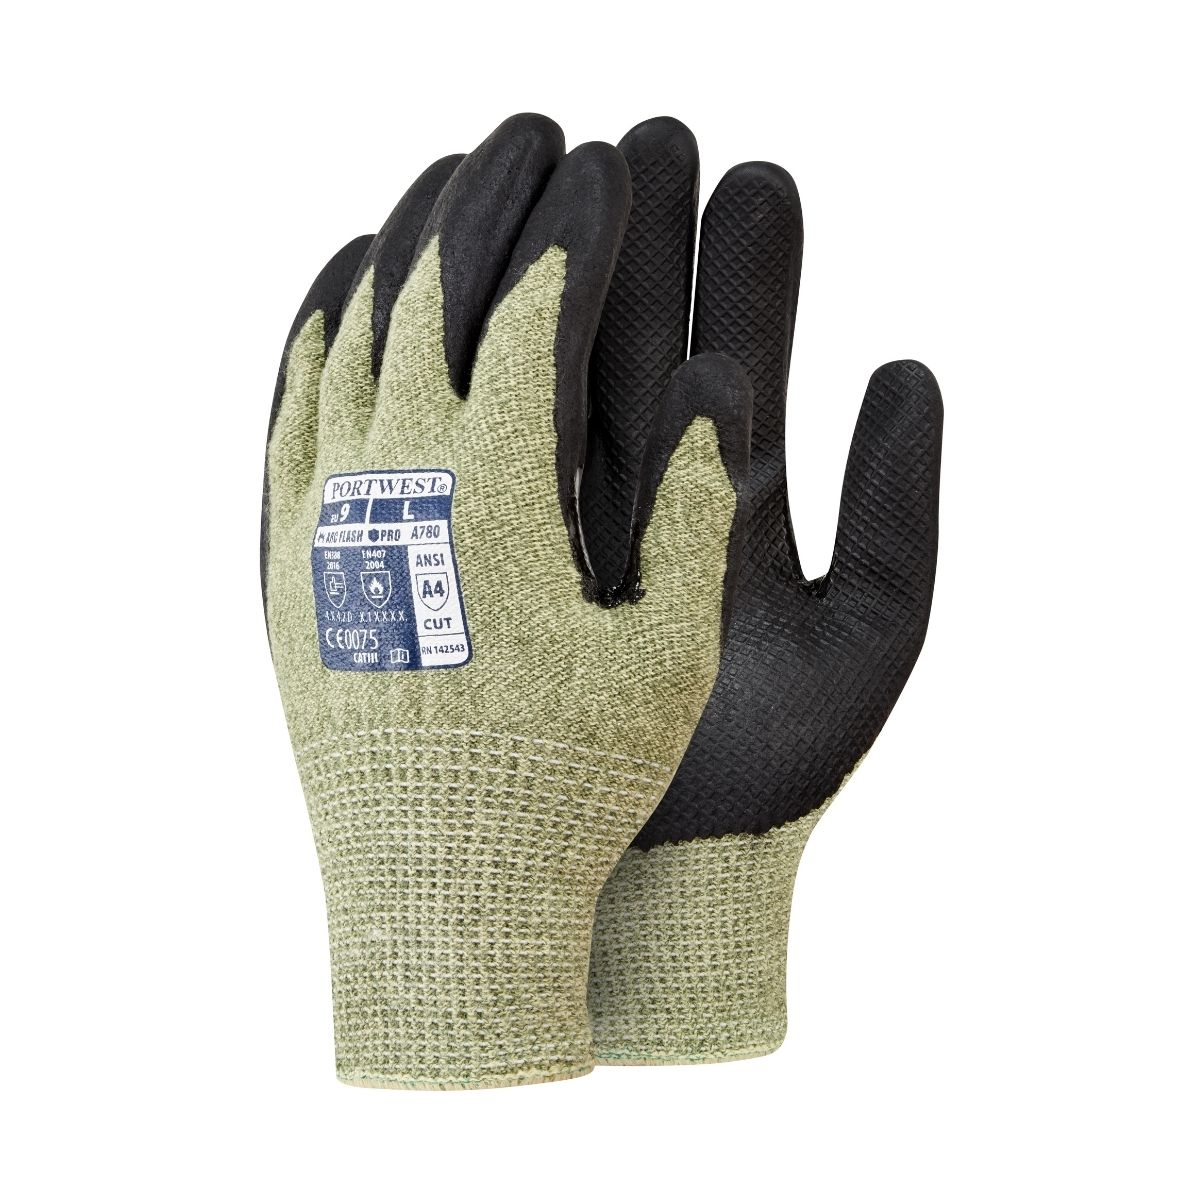 GL0016 FR ARC Grip Glove